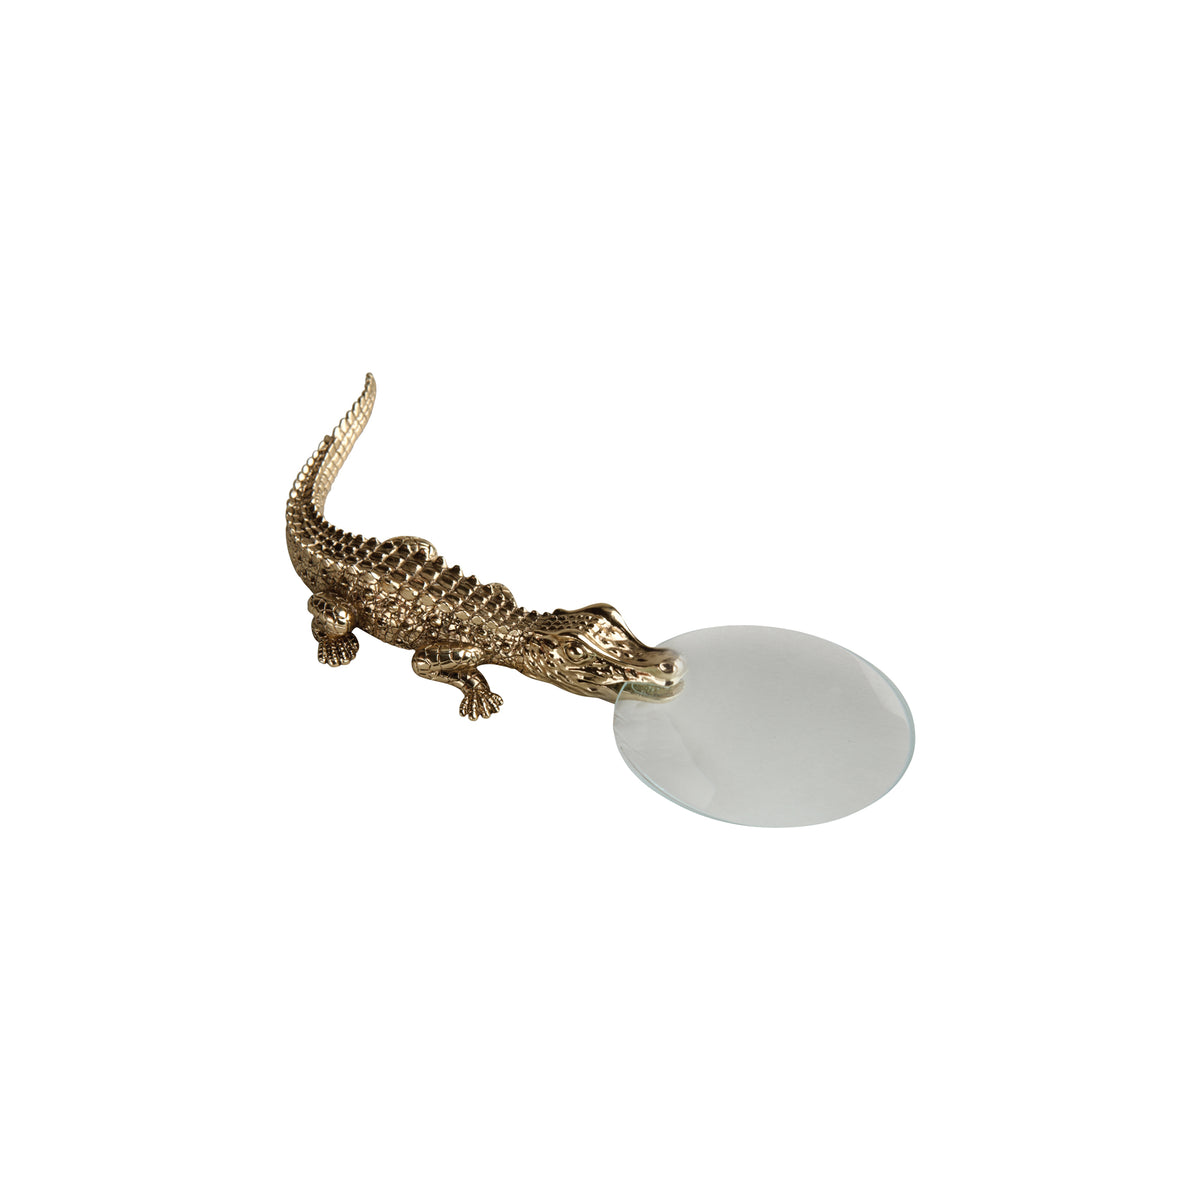 Gold Plated Crocodile Magnifying Glass